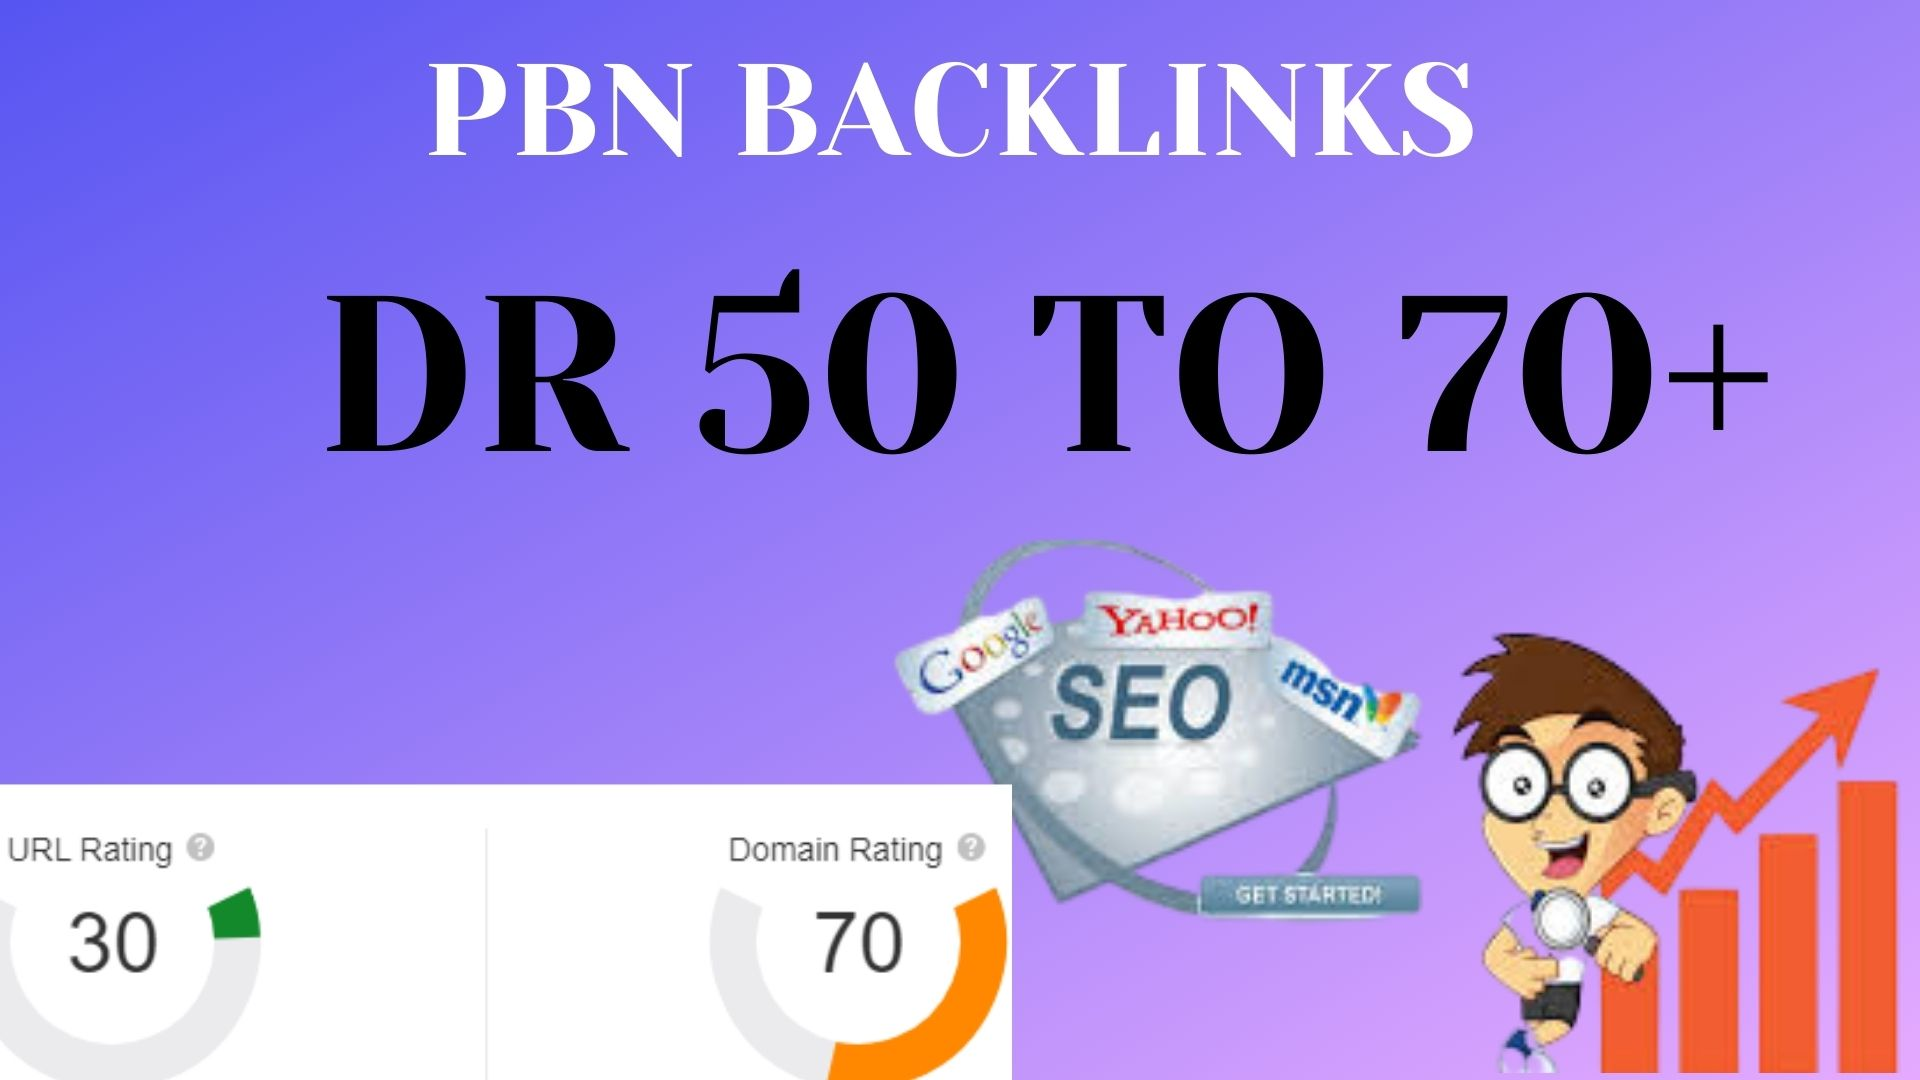 I will increase ahrefs domain rating DR 60 with seo backlinks